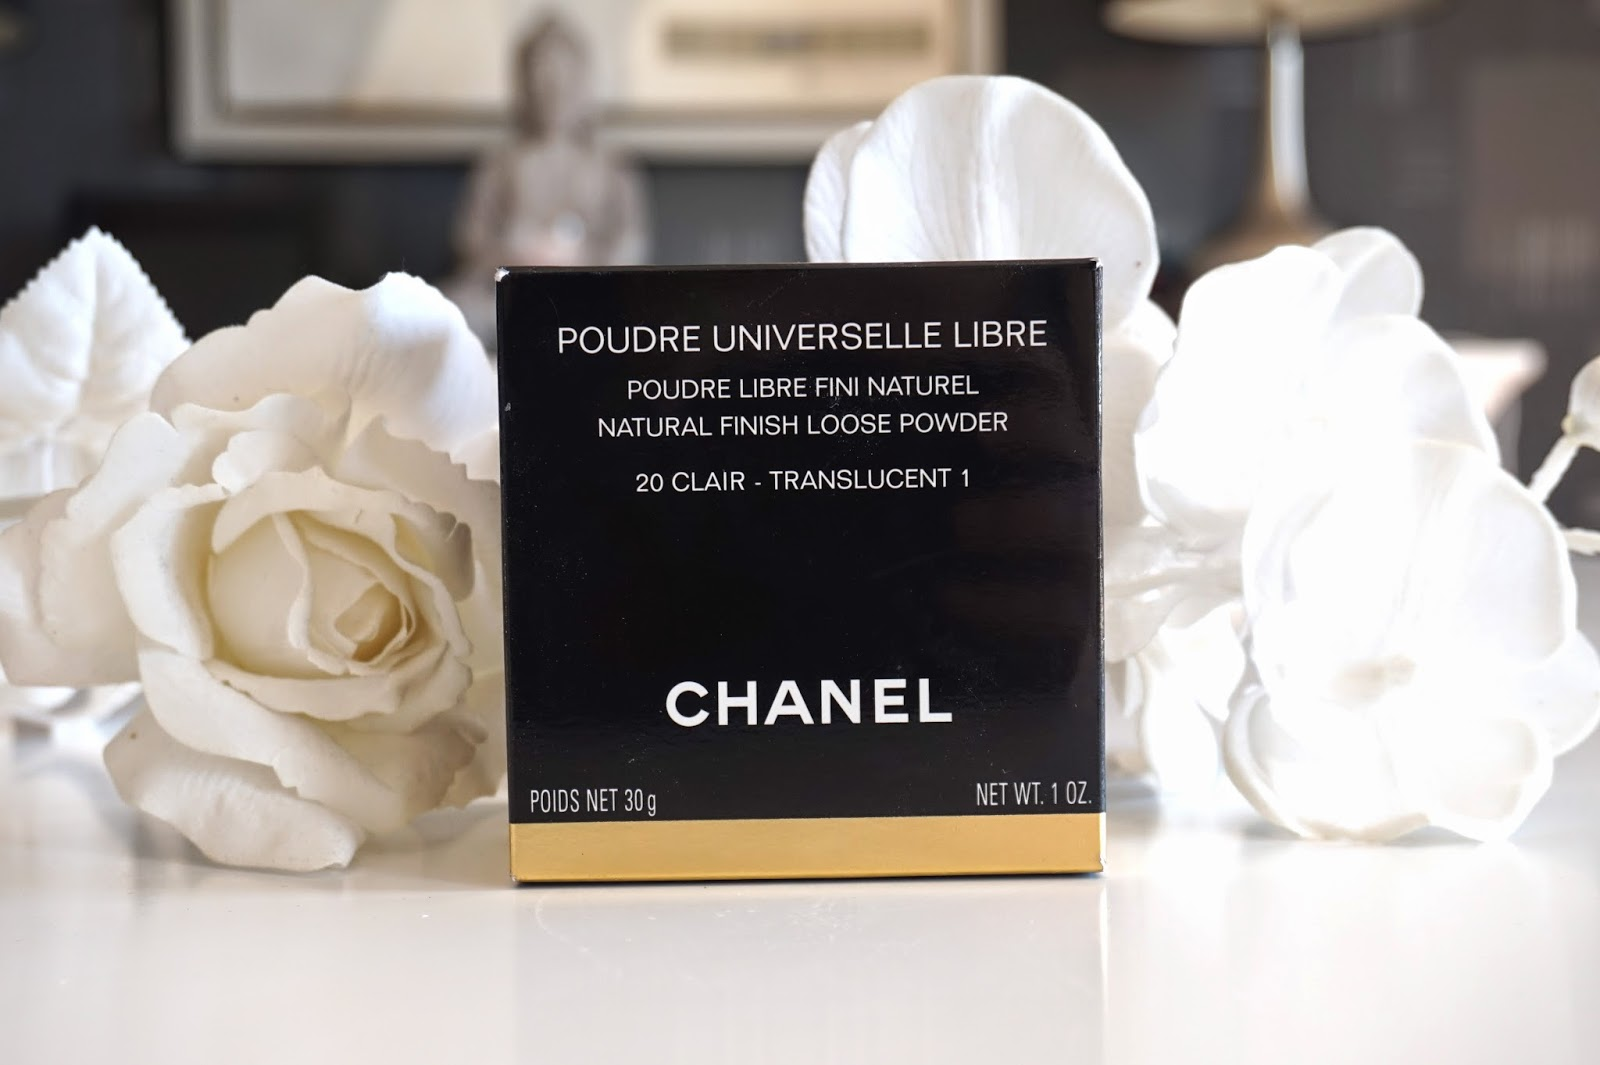 Phấn bột Chanel Natural Finish Loose Powder